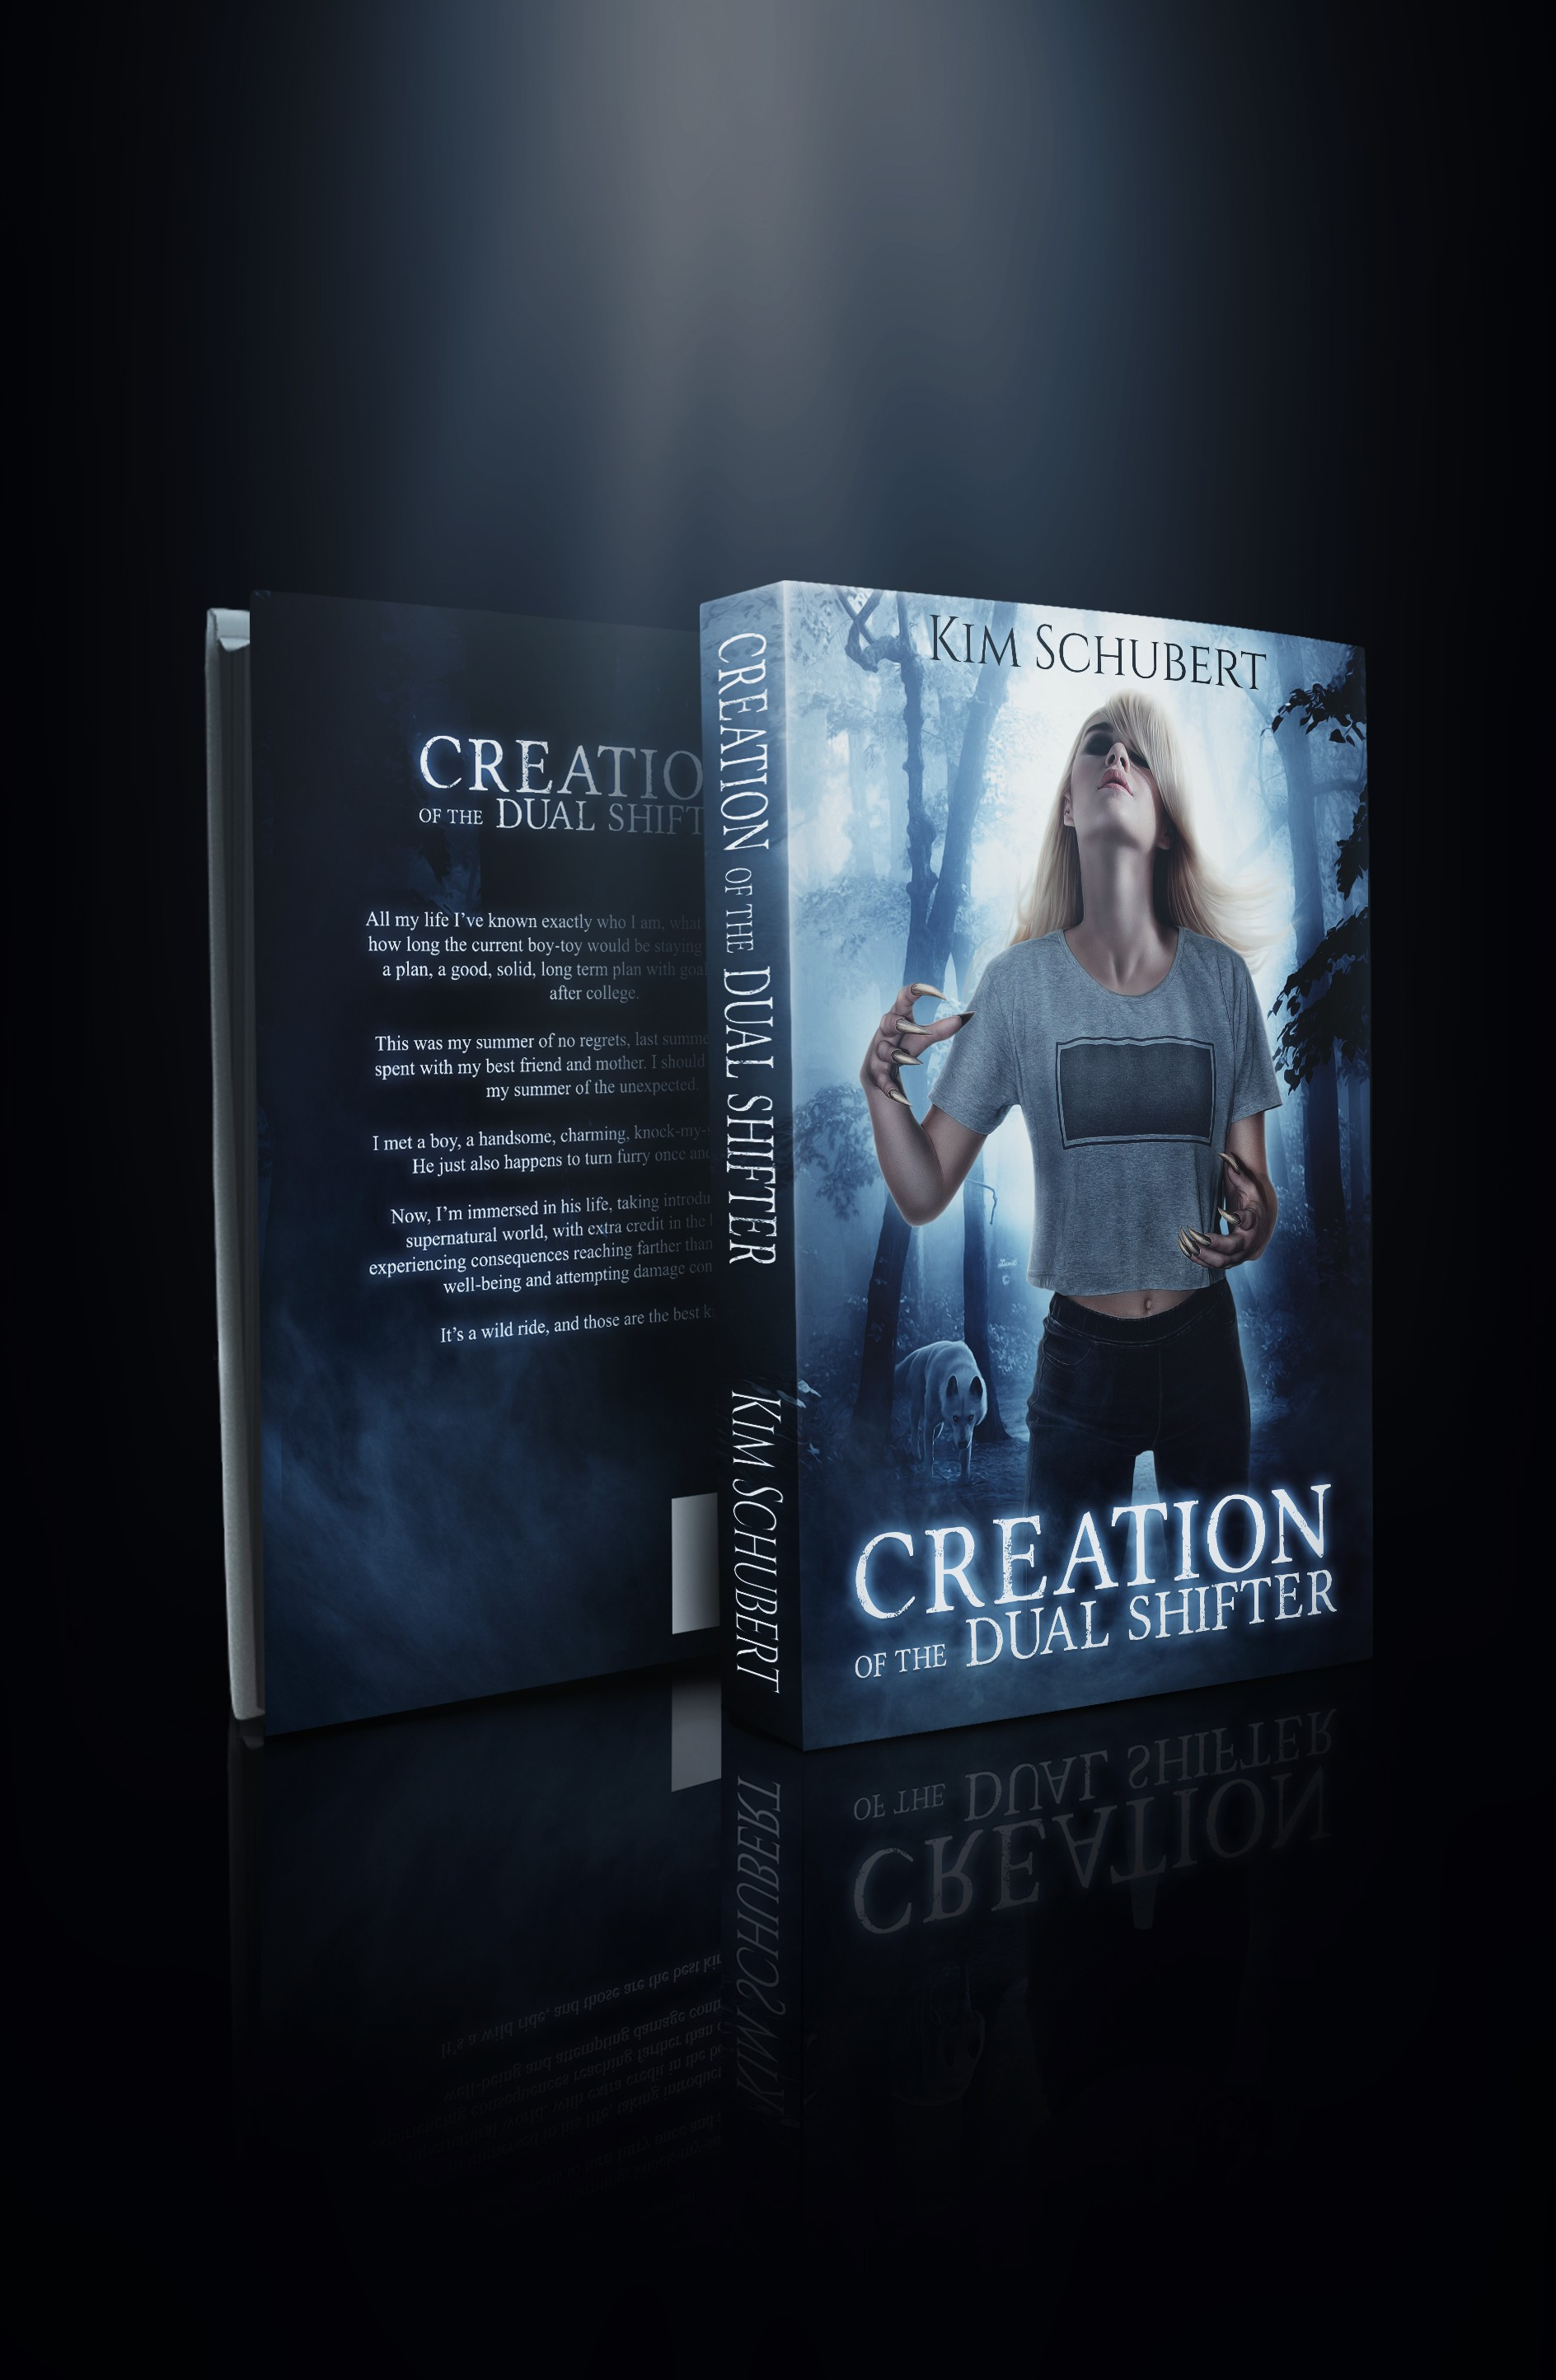 eBook cover and print cover